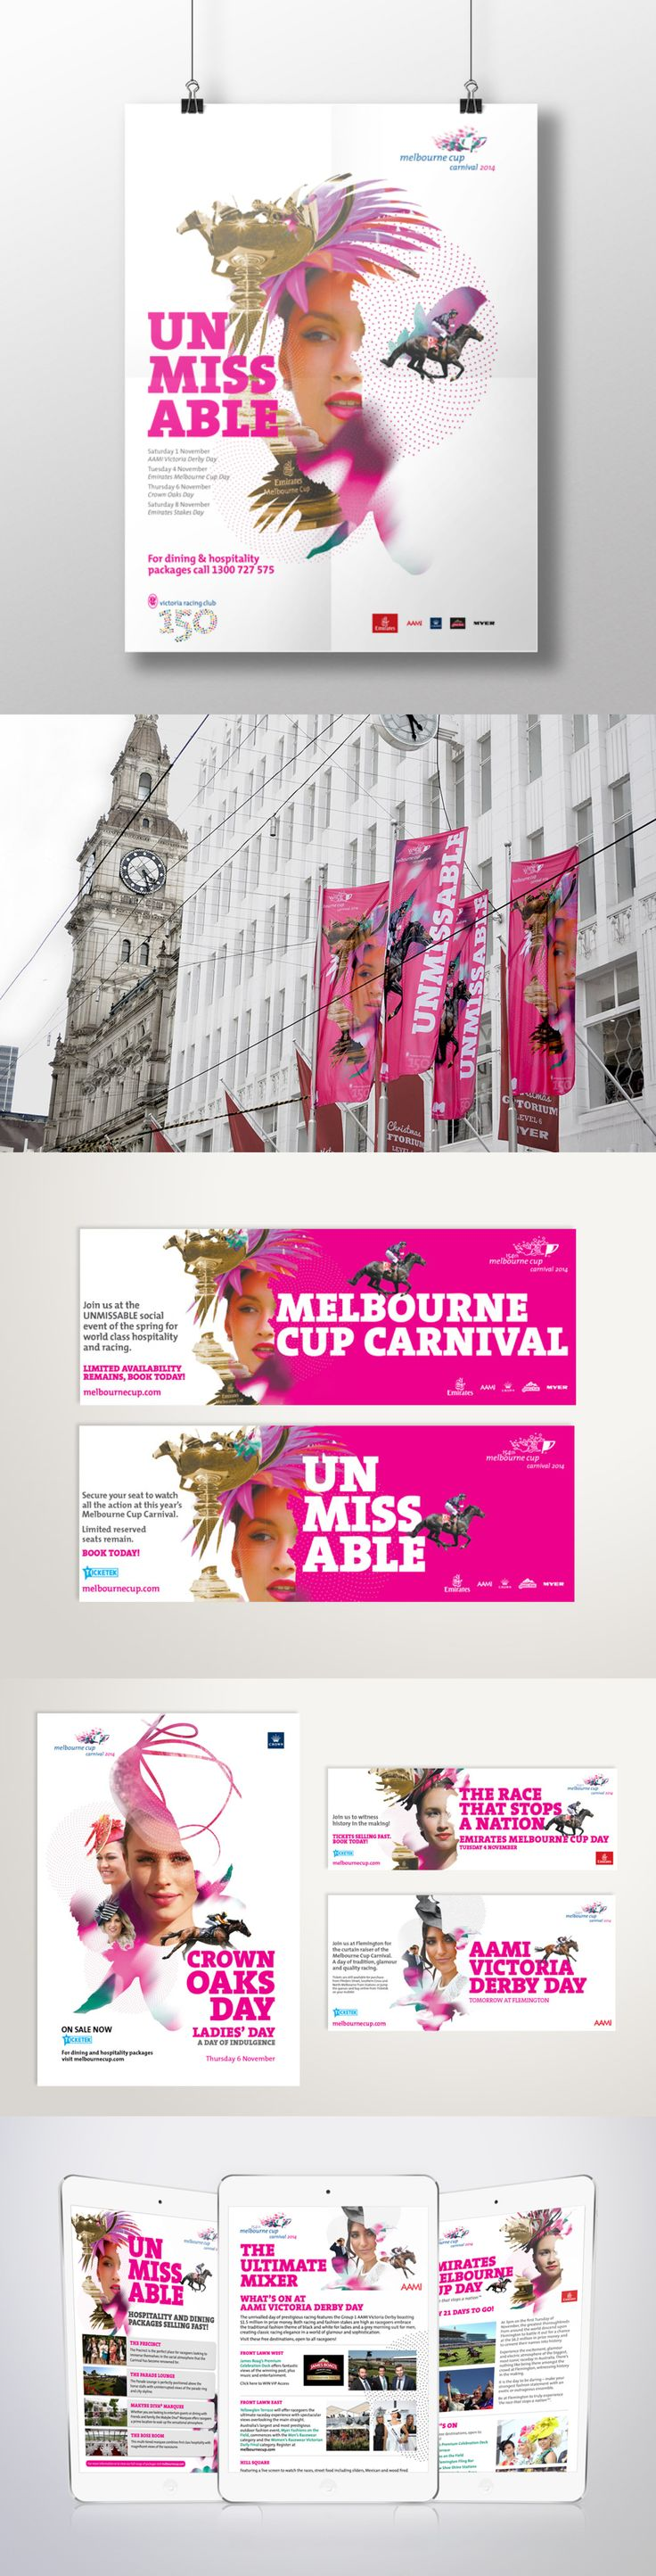 Melbourne Cup Carnival Creative – Advertising Associates